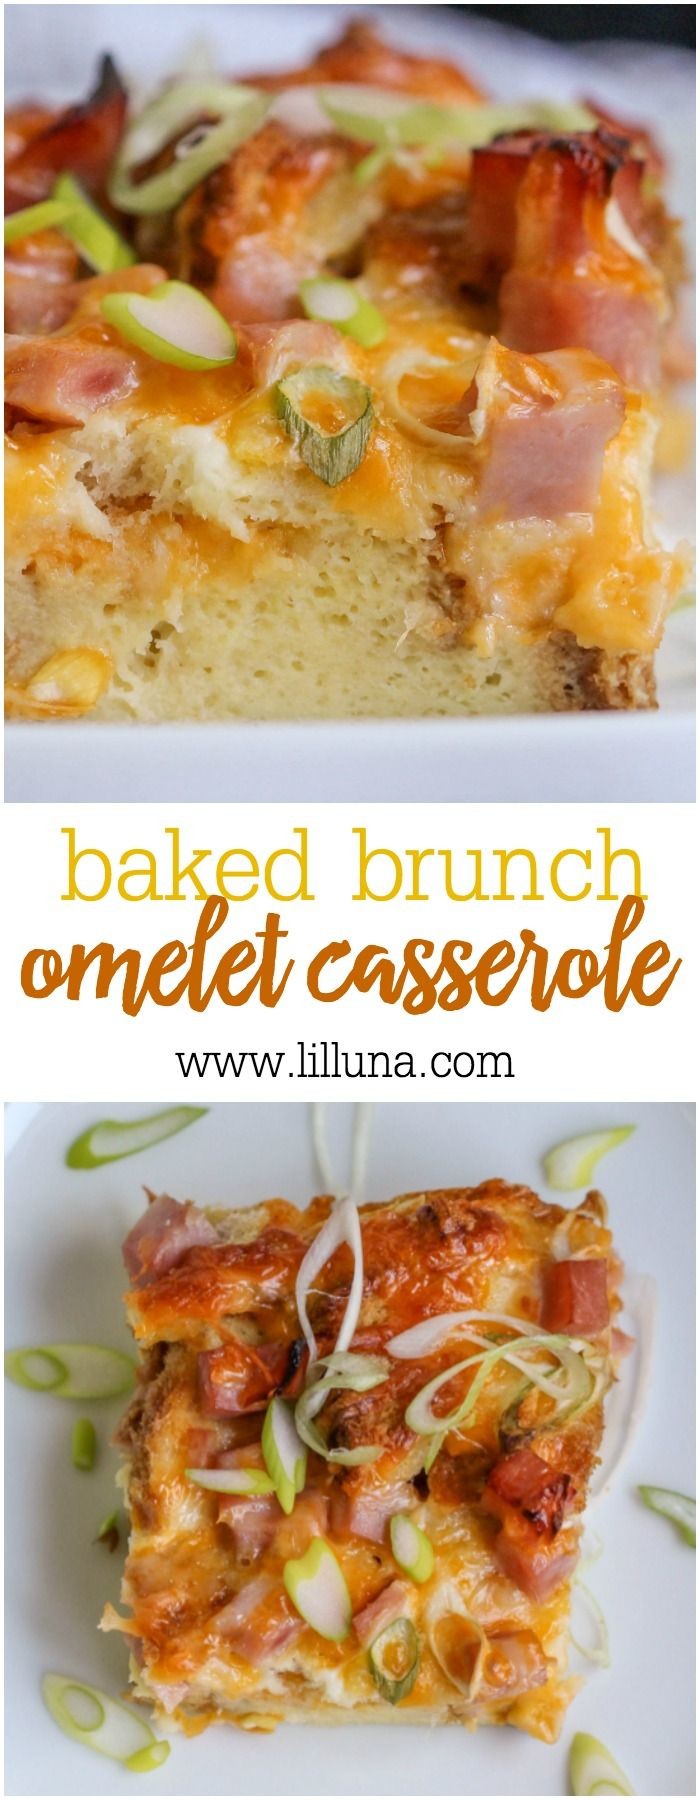 Baked Brunch Omelet Casserole - filled with eggs, cheese and ham - the perfect breakfast recipe!